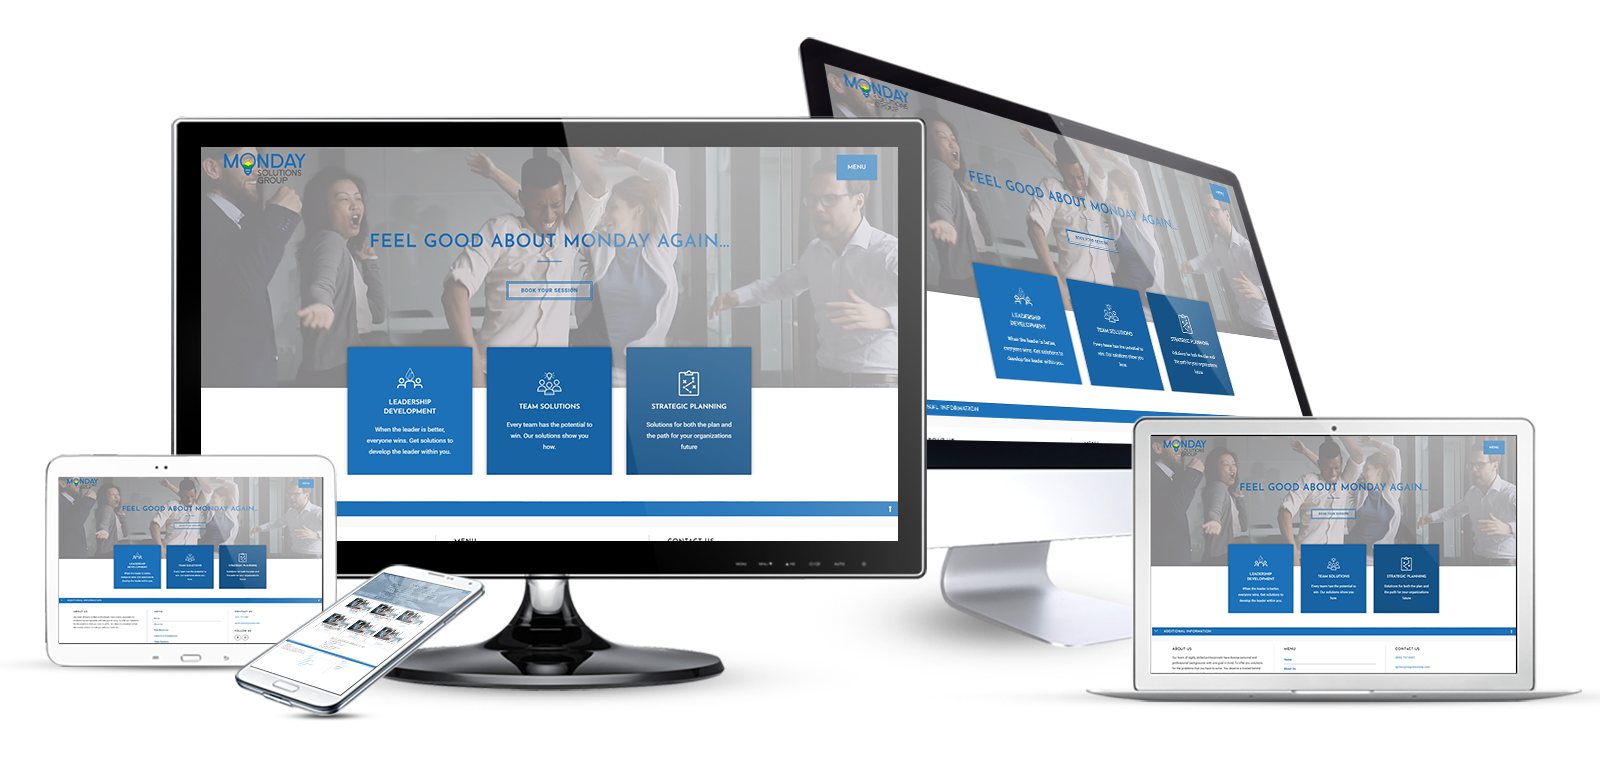 Begin Monday Consulting Website Multi Device Mockup